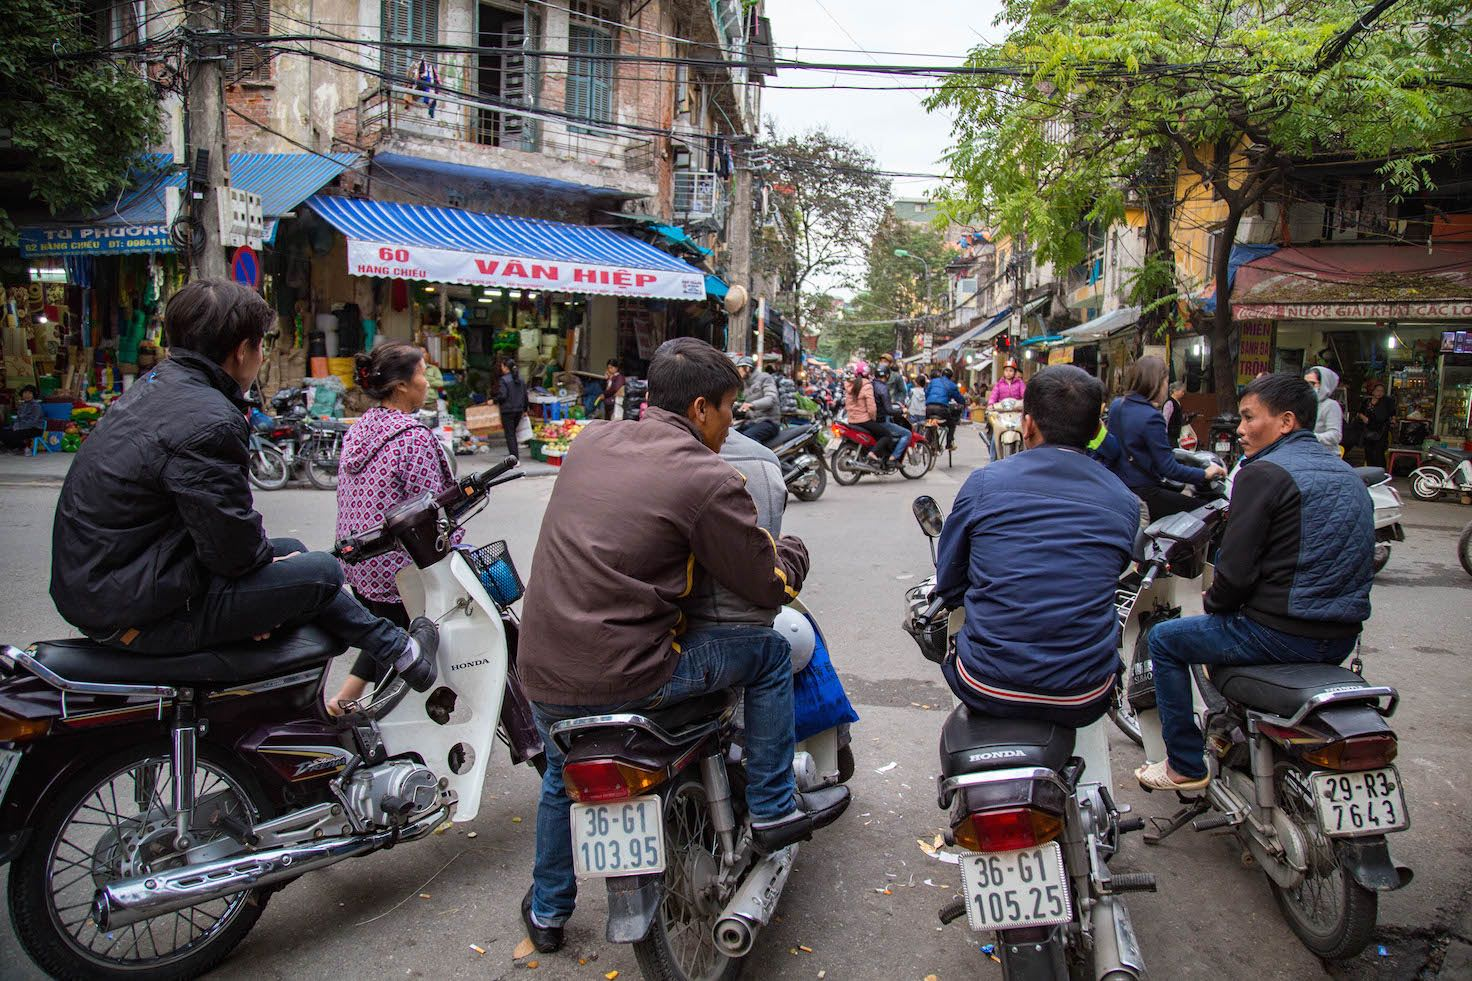 Hanoi-moments of yugen-Old Quarter Motorbikes